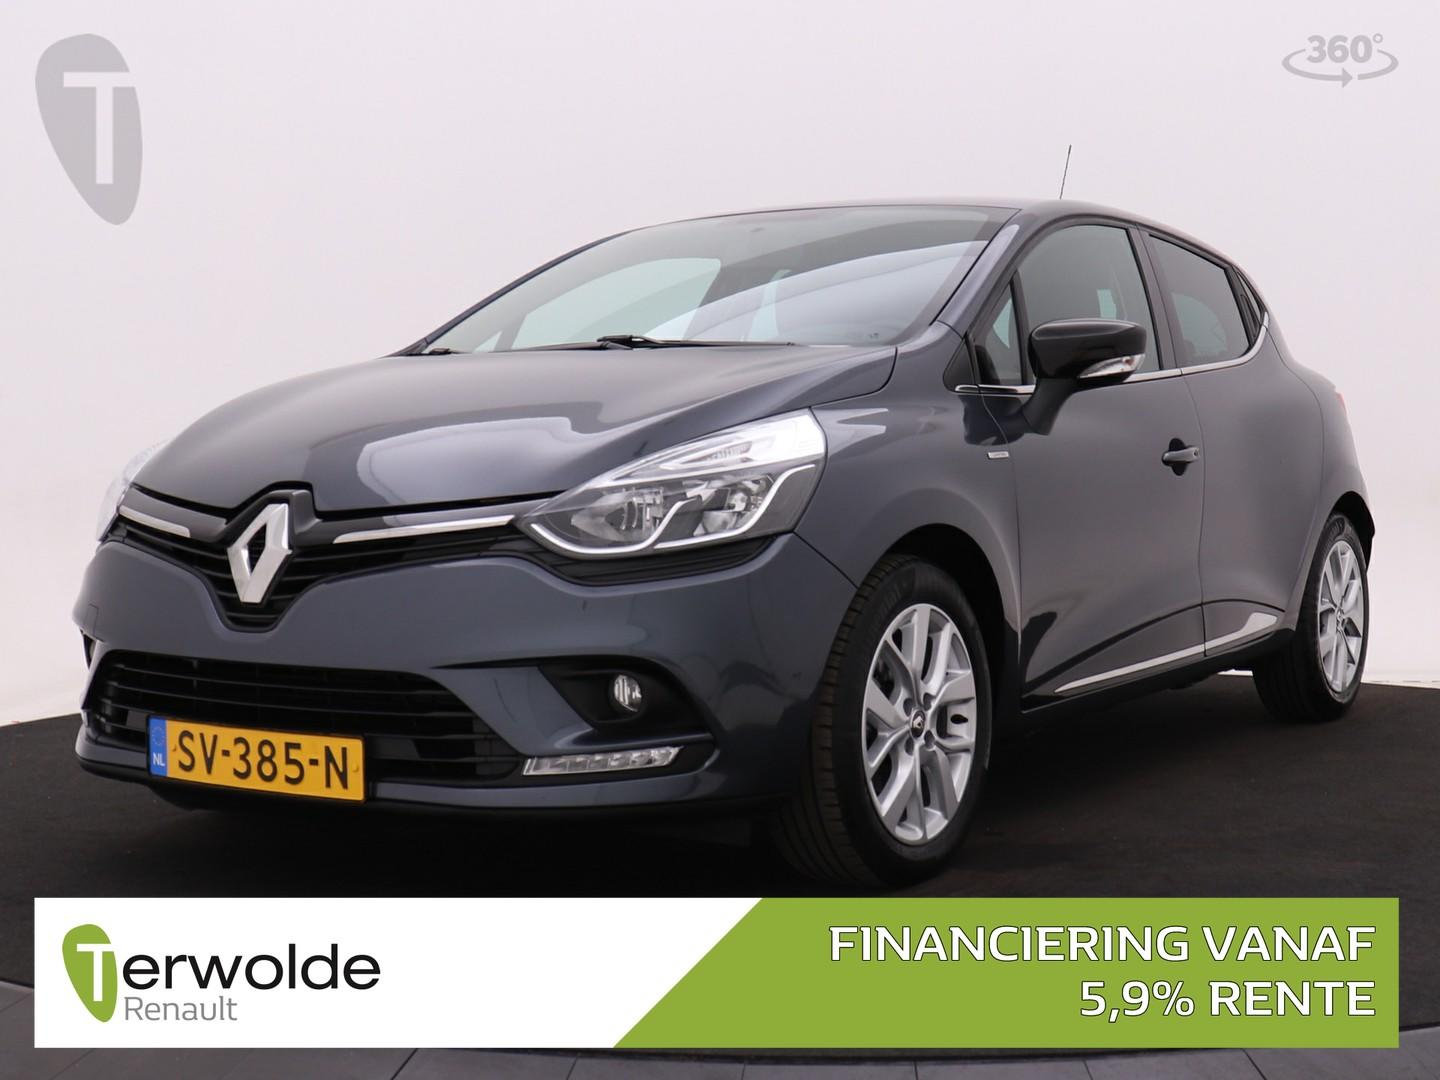 Renault Clio 90pk tce limited airco i cruise control i parkeersensoren